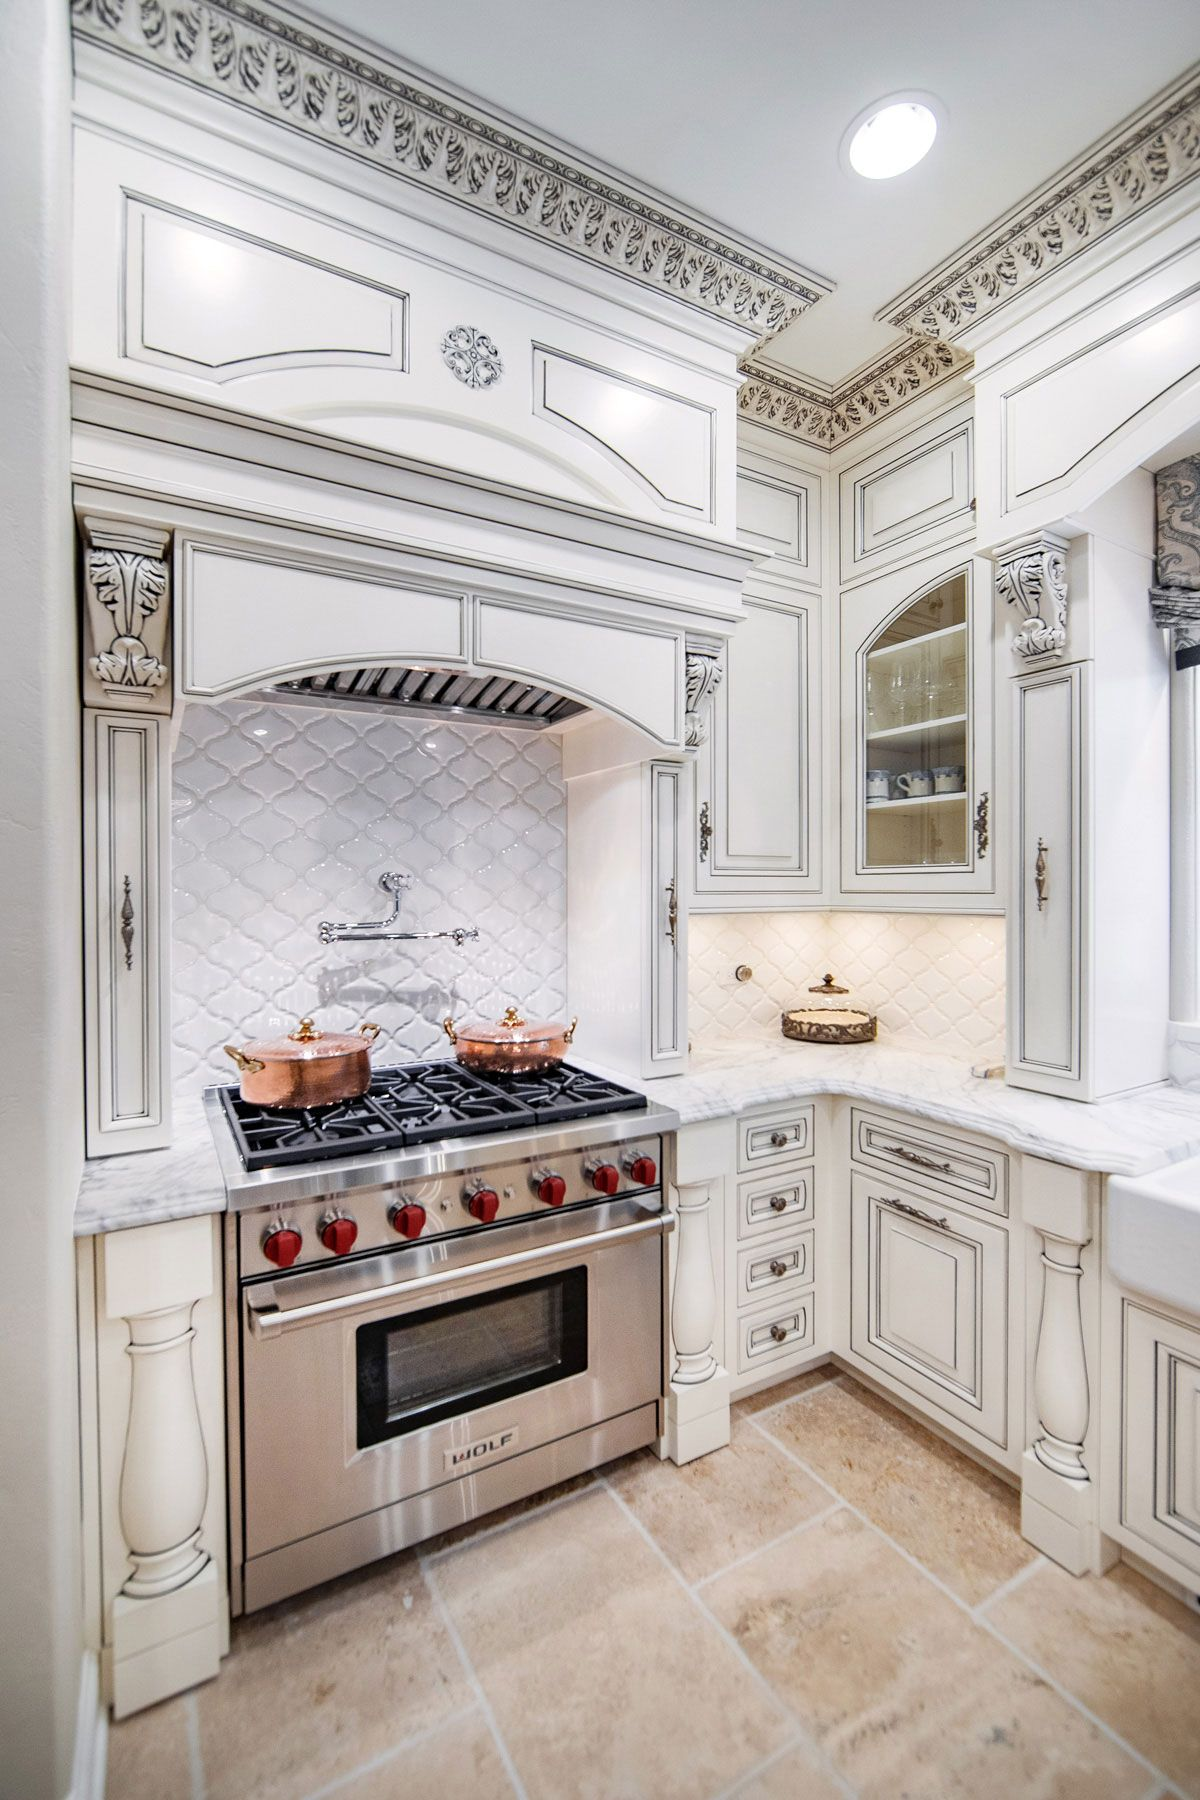 Kitchen And Bathroom Remodeling In Chicago Linly Designs Kitchen Bathroom Remodel Popular Bathroom Designs Bathrooms Remodel